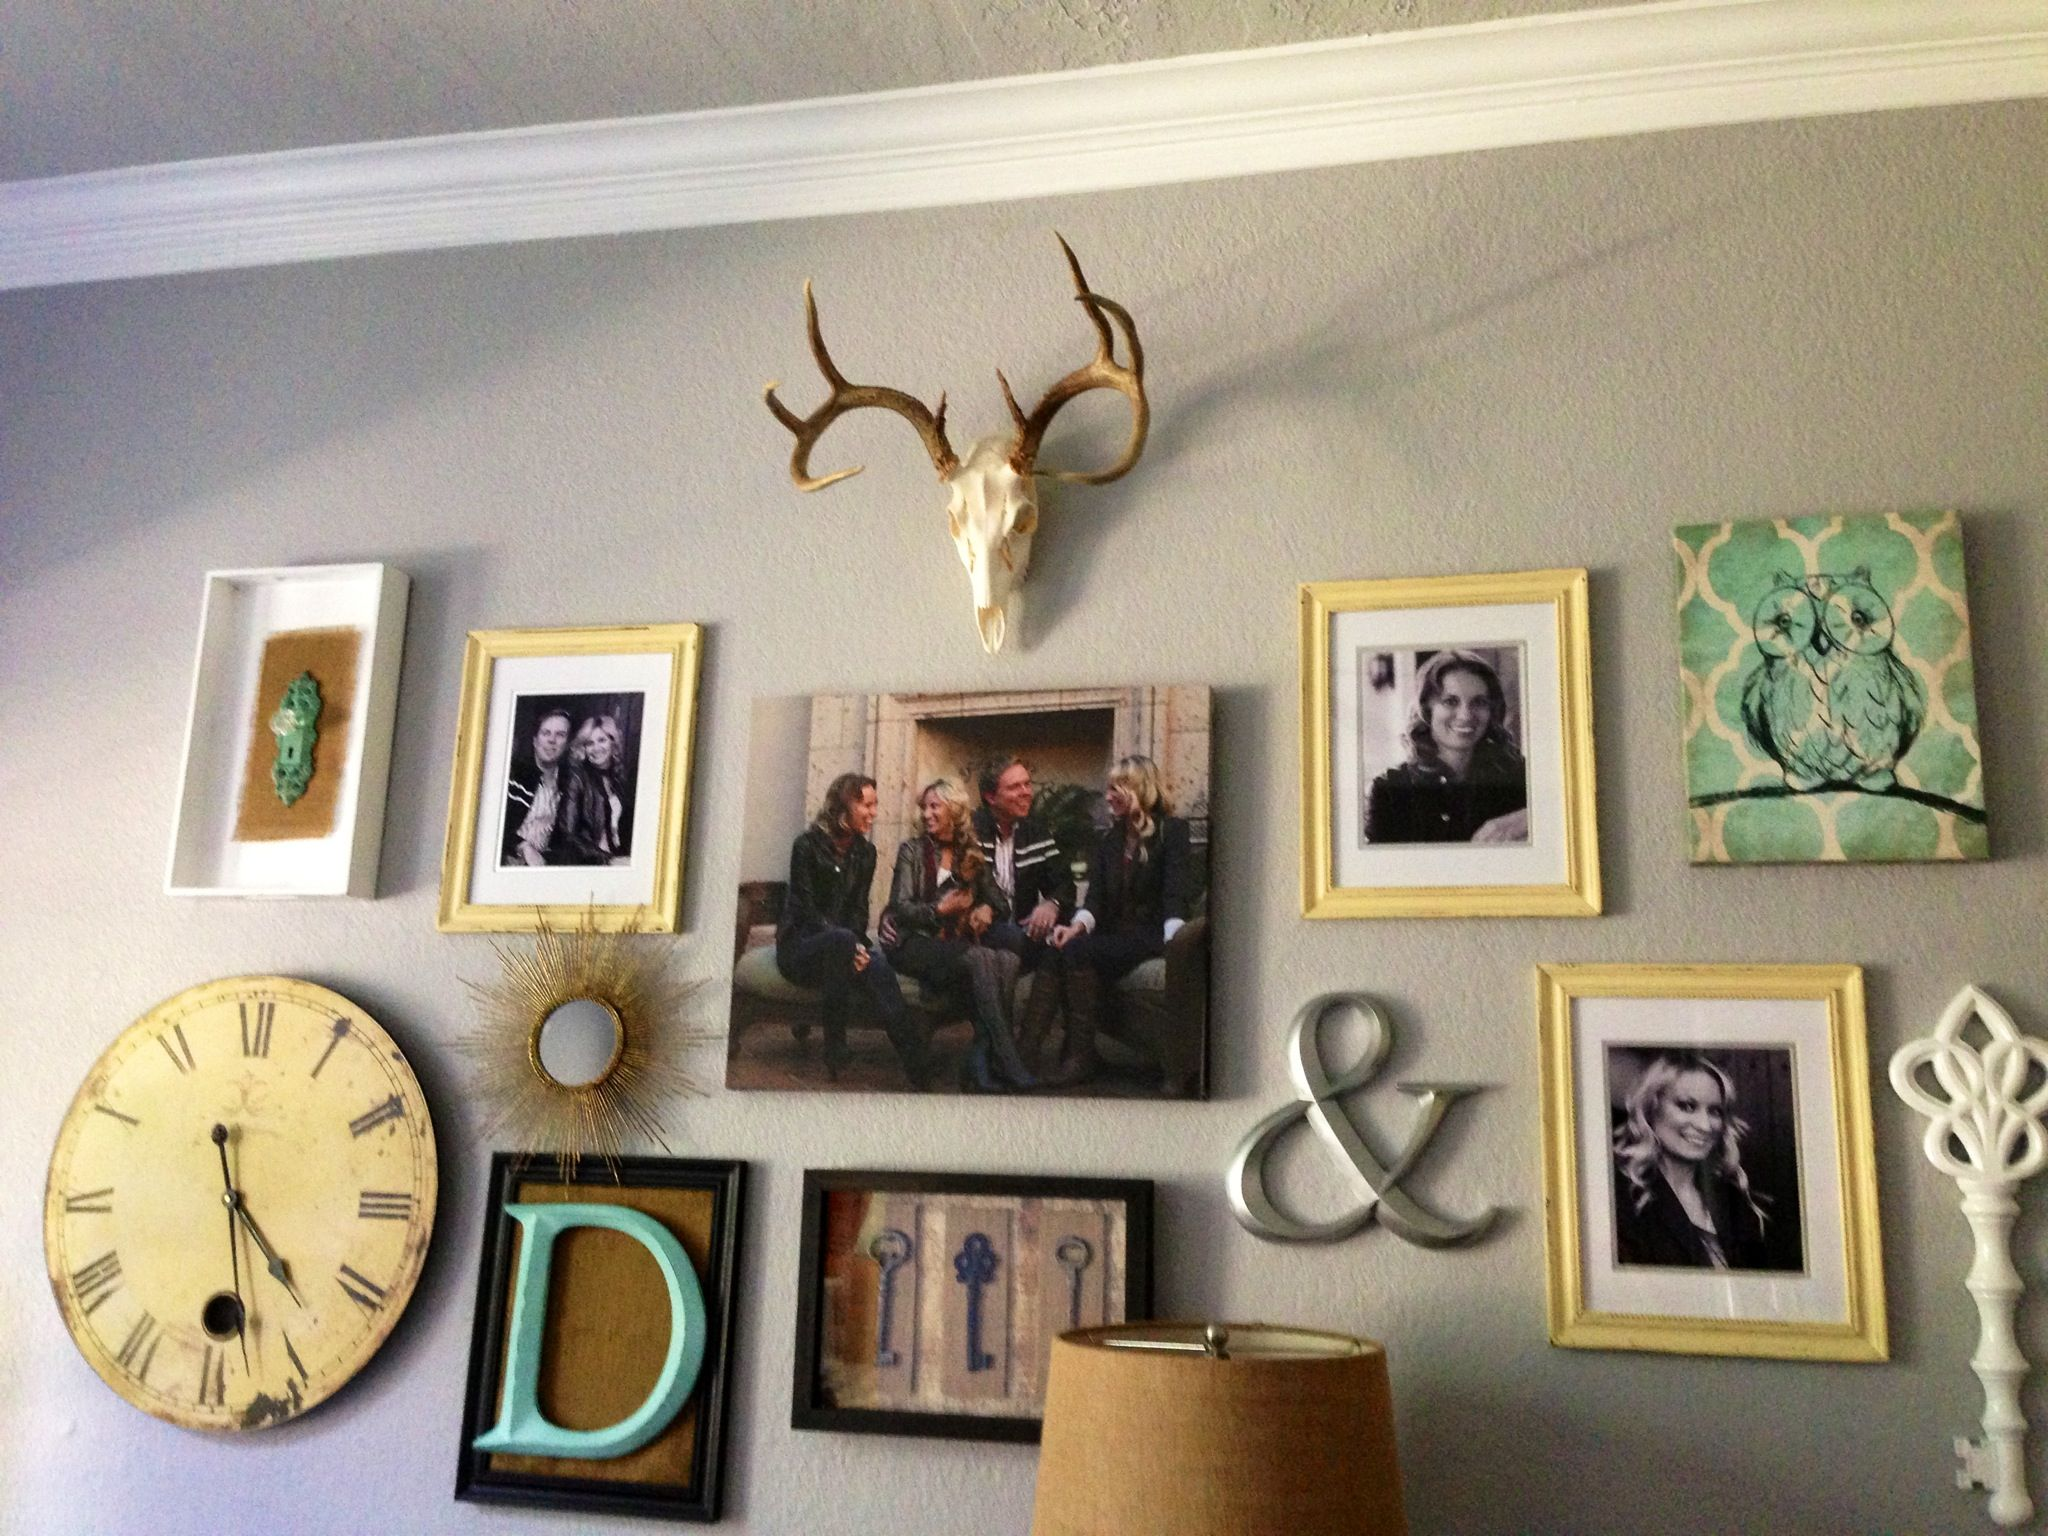 Eclectic Collage Wall In Our House. #DavenportRanch